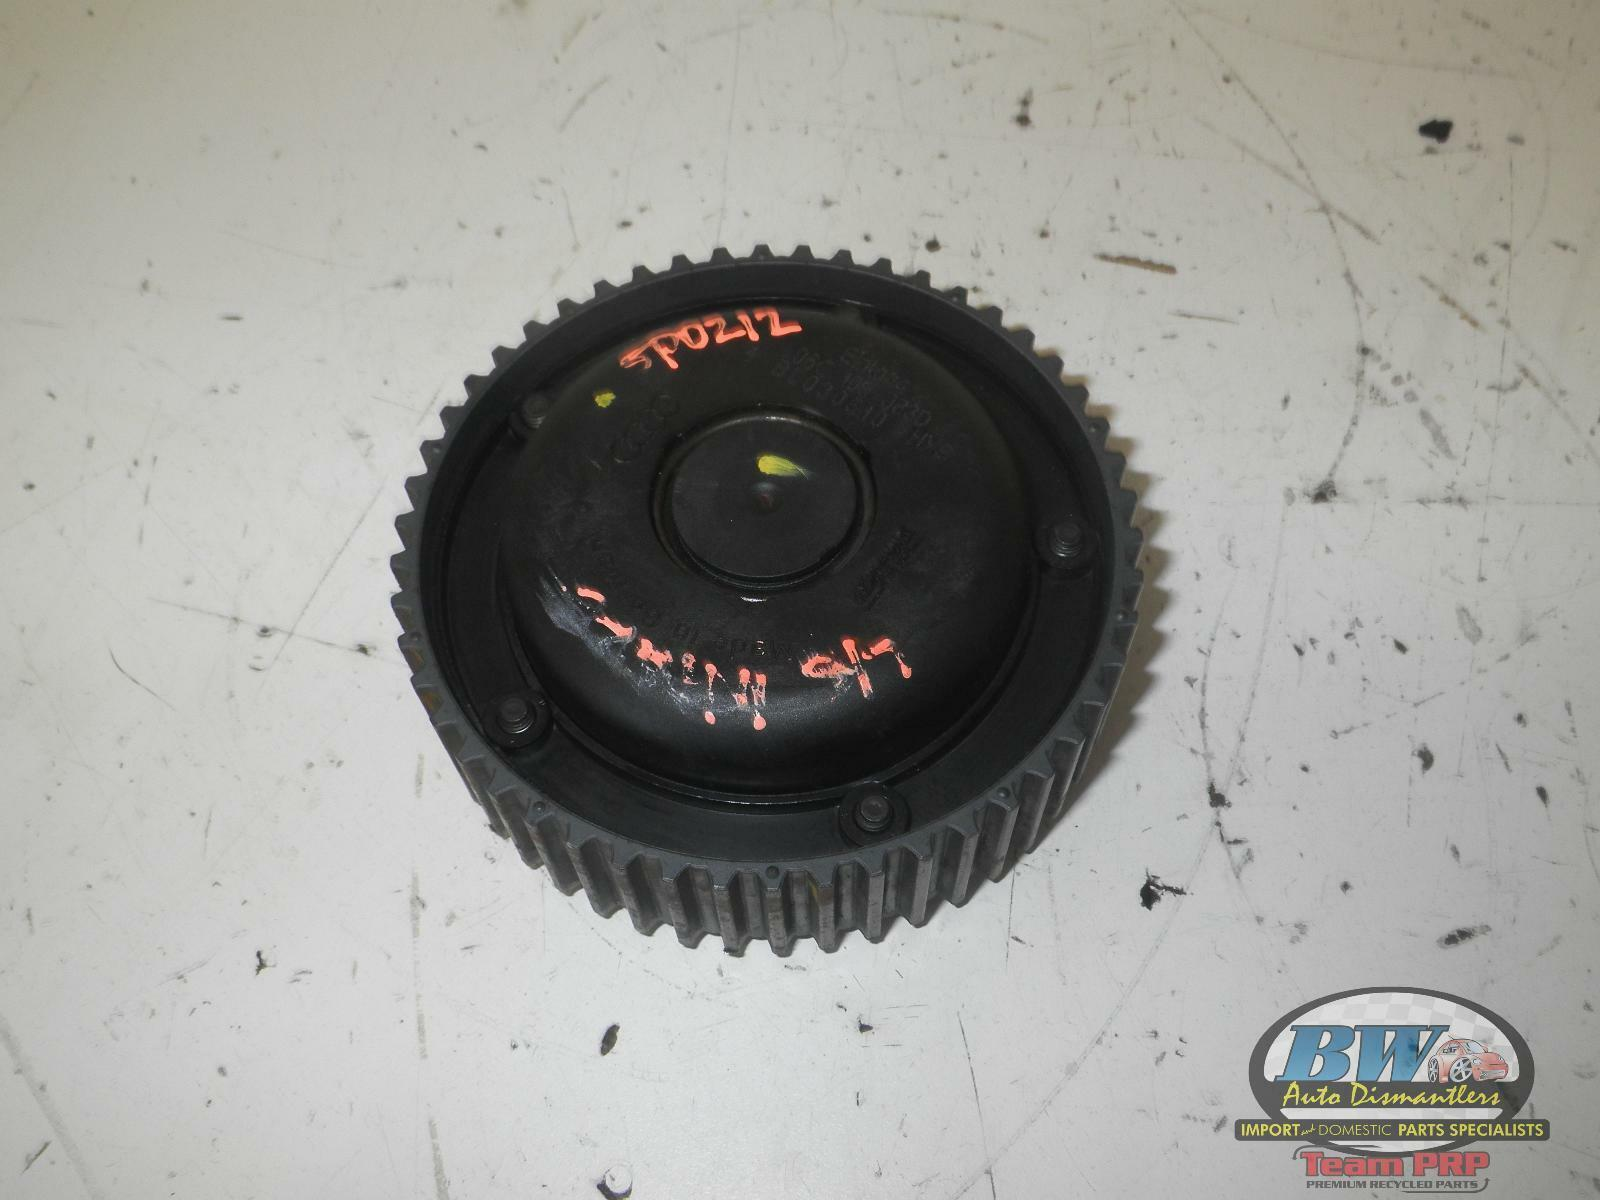 02-05 AUDI A4 A6 3.0L CAMSHAFT PULLEY TIMING GEAR 06C 109 083 D INTAKE